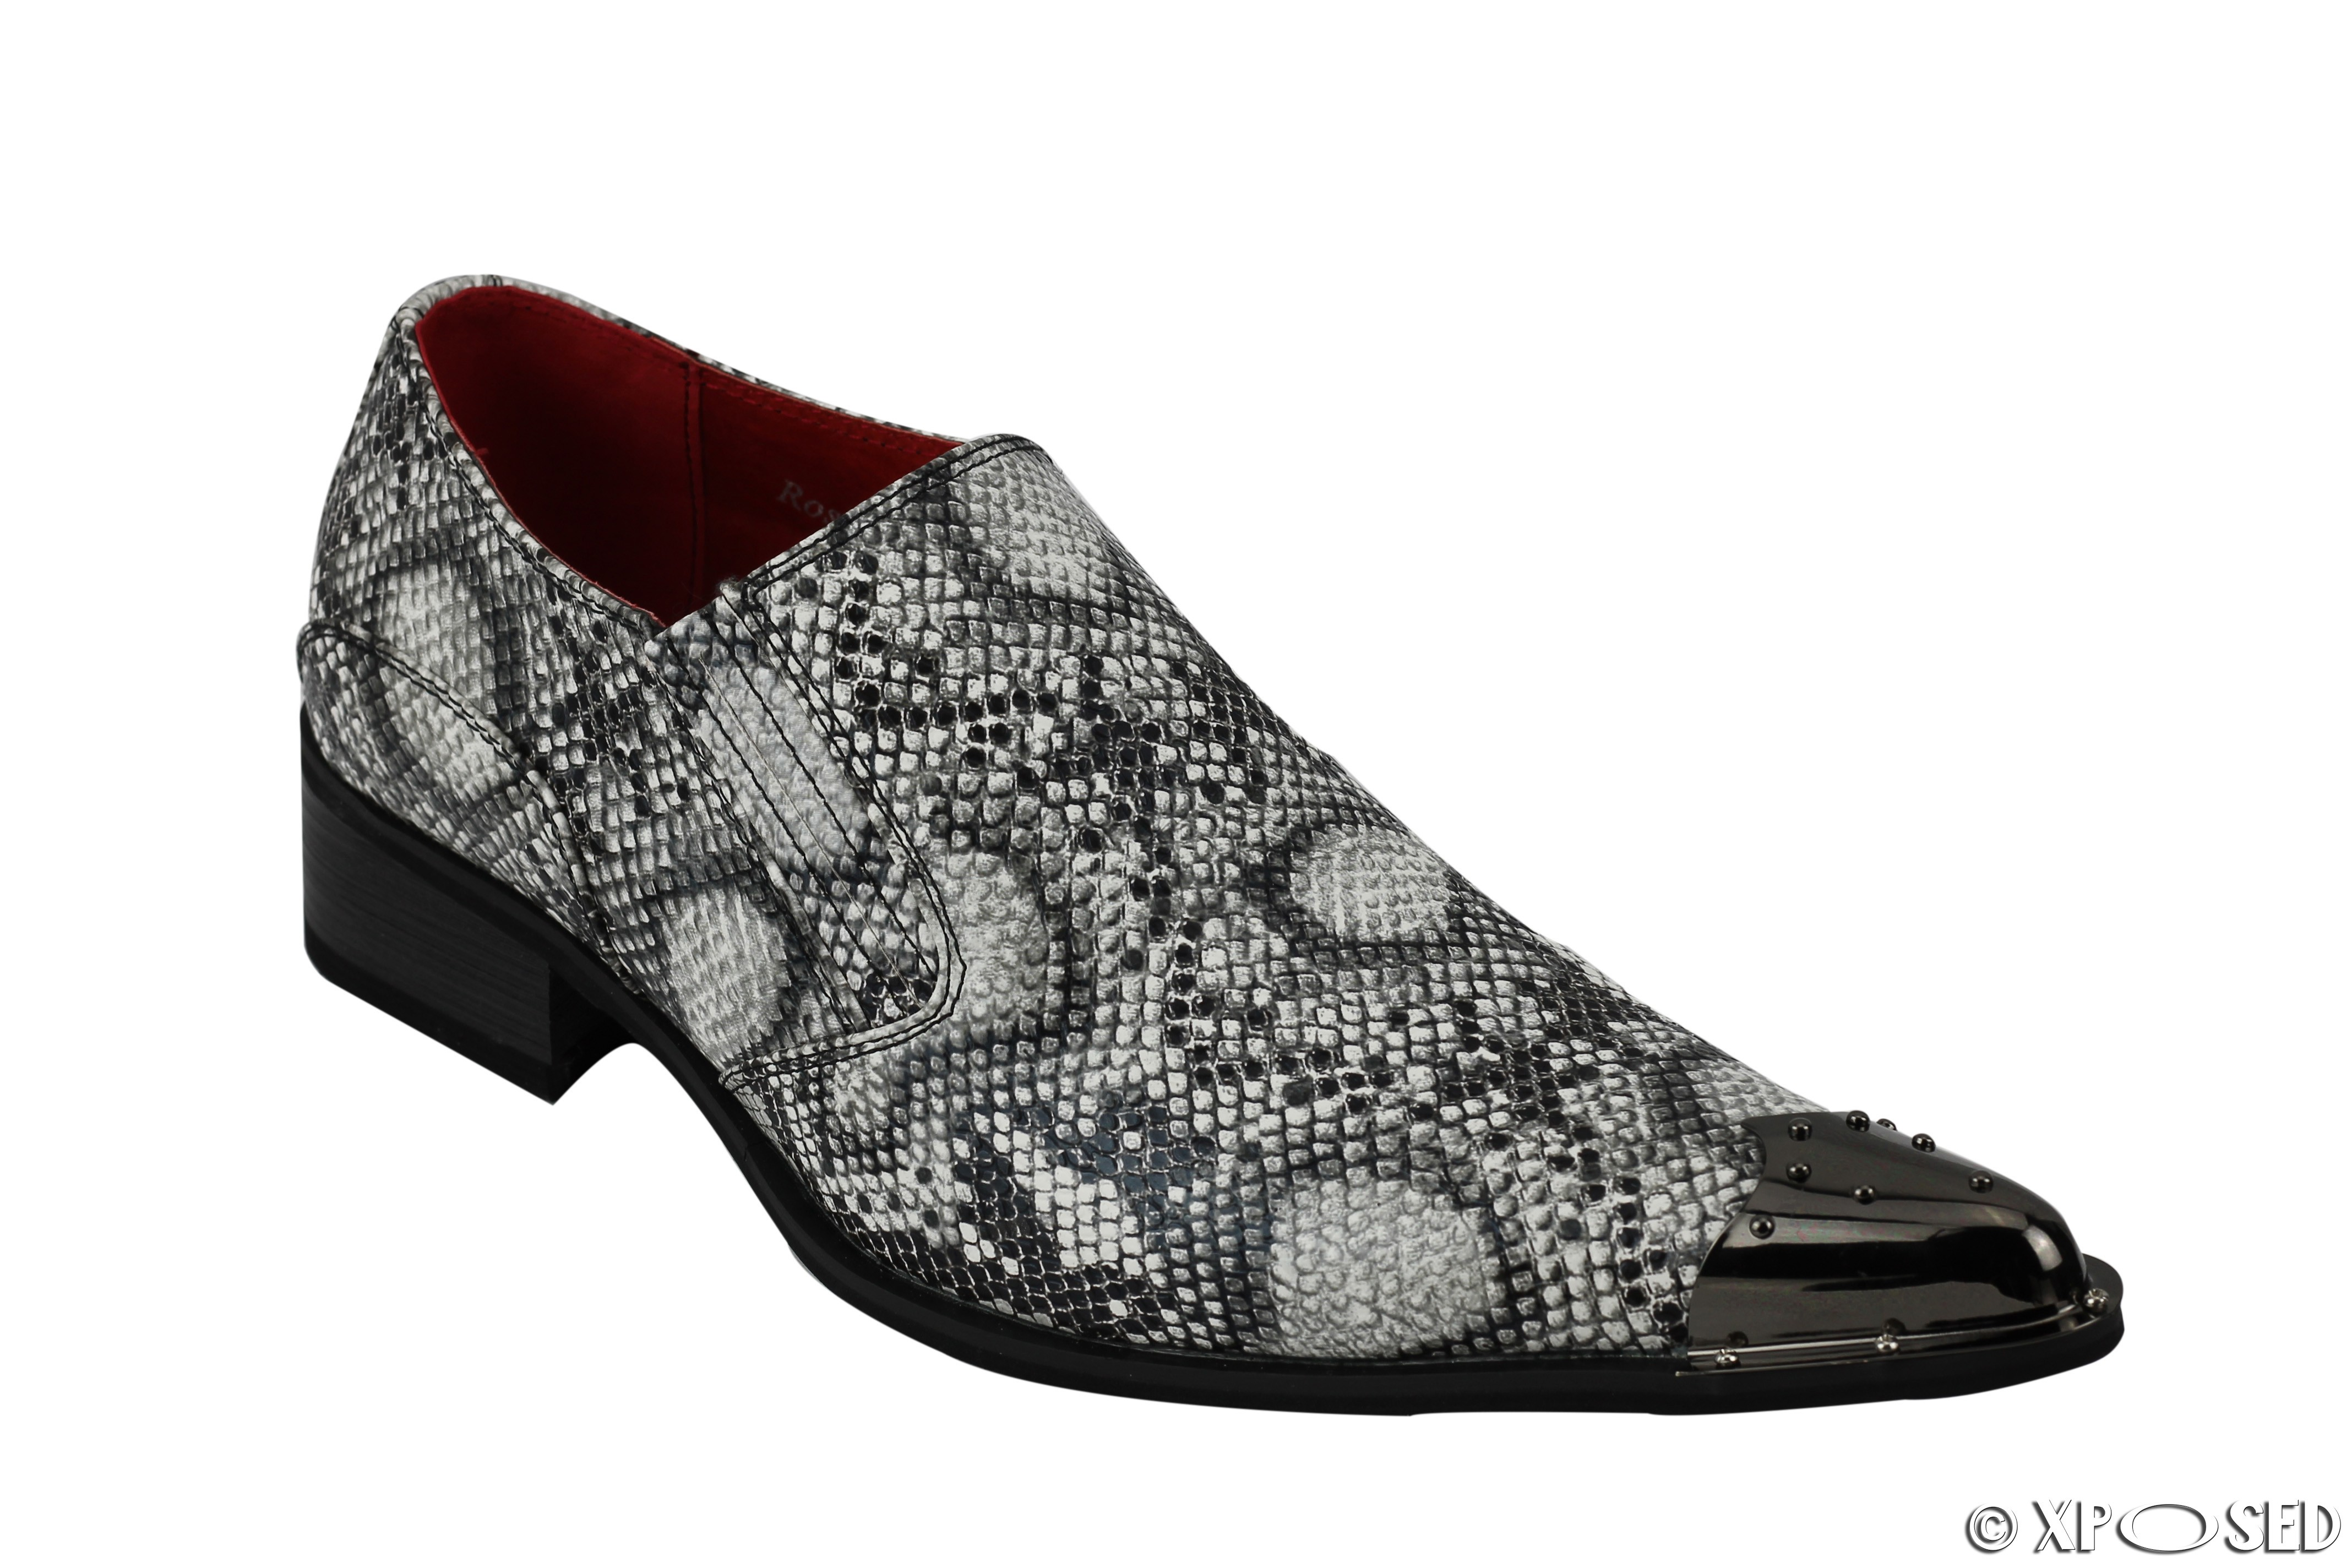 Snakeskin Leather Shoes